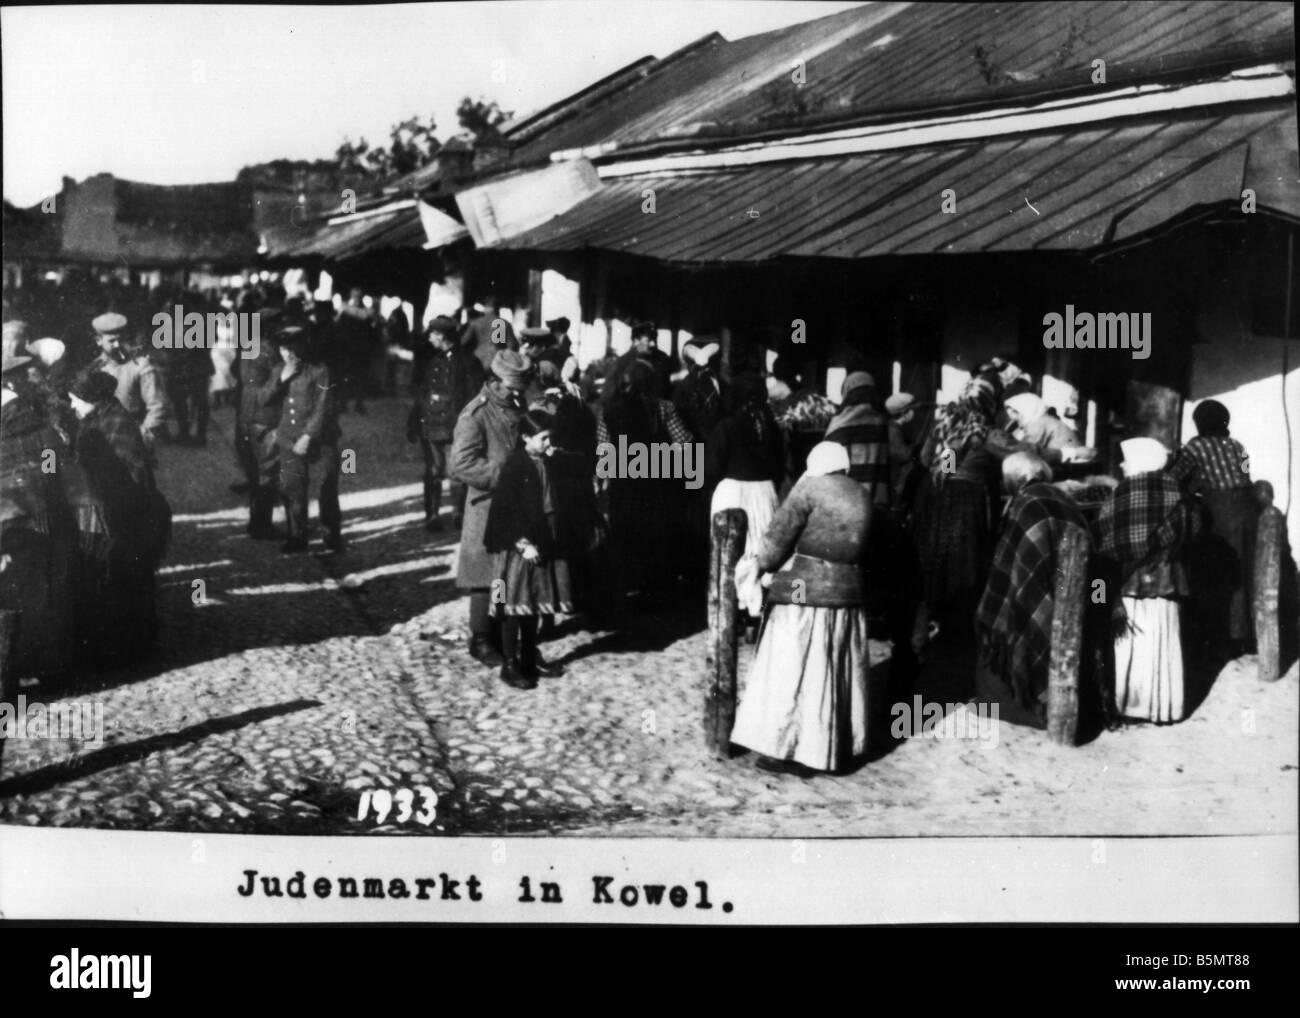 9IS 1915 0 0 A1 47 Jewish market in Kovel Photo 1915 History of Judaism Eastern Jews Jewish market in Kovel Volhynia - Stock Image